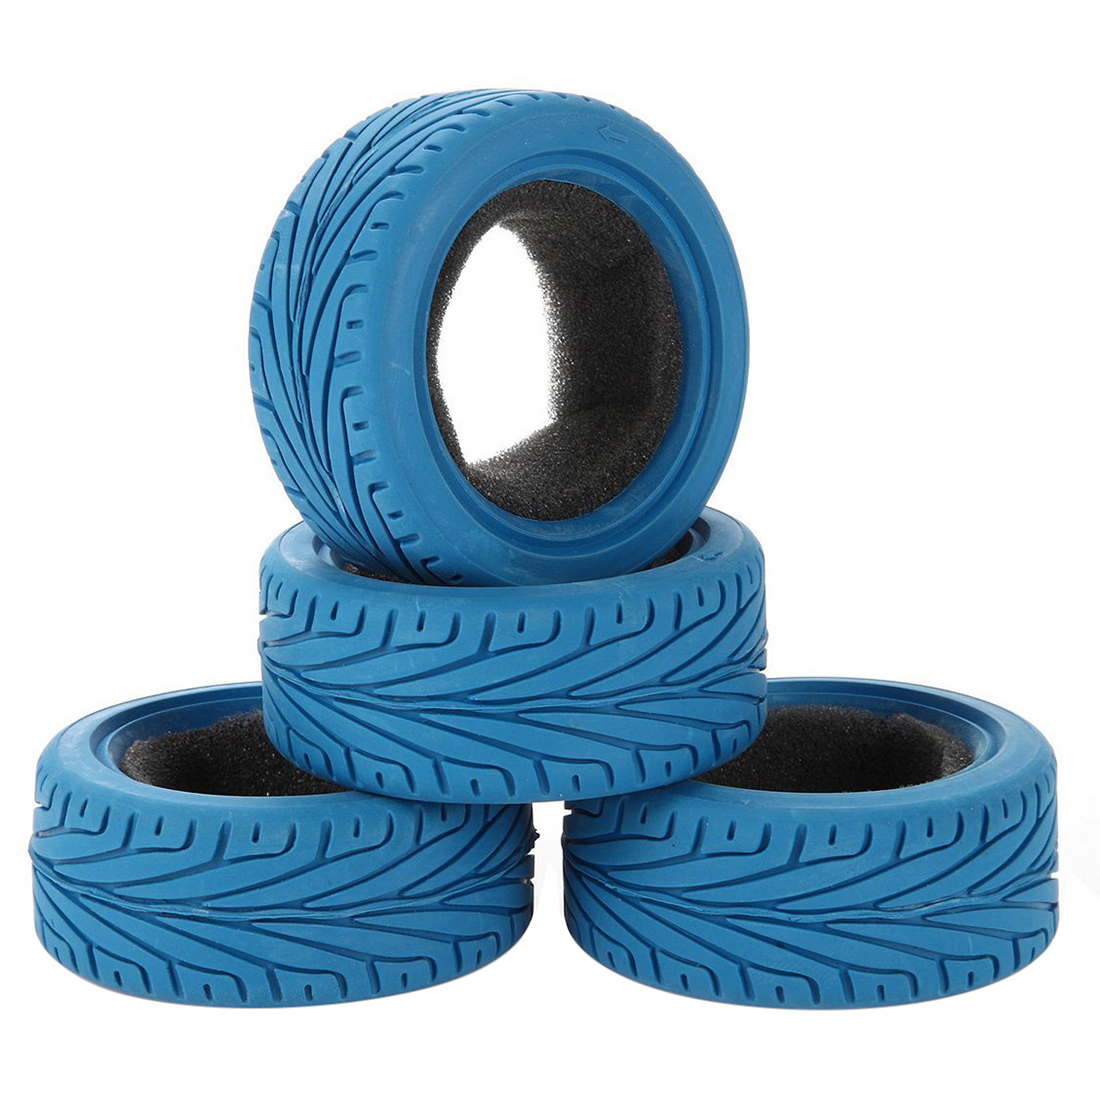 1/10 RC Run-Flat Car Tyres, 65mm Rubber RC On-Road Tire for 1/10 Traxxas HSP Tamiya HPI Kyosho RC On-Road Run-flating Car Part